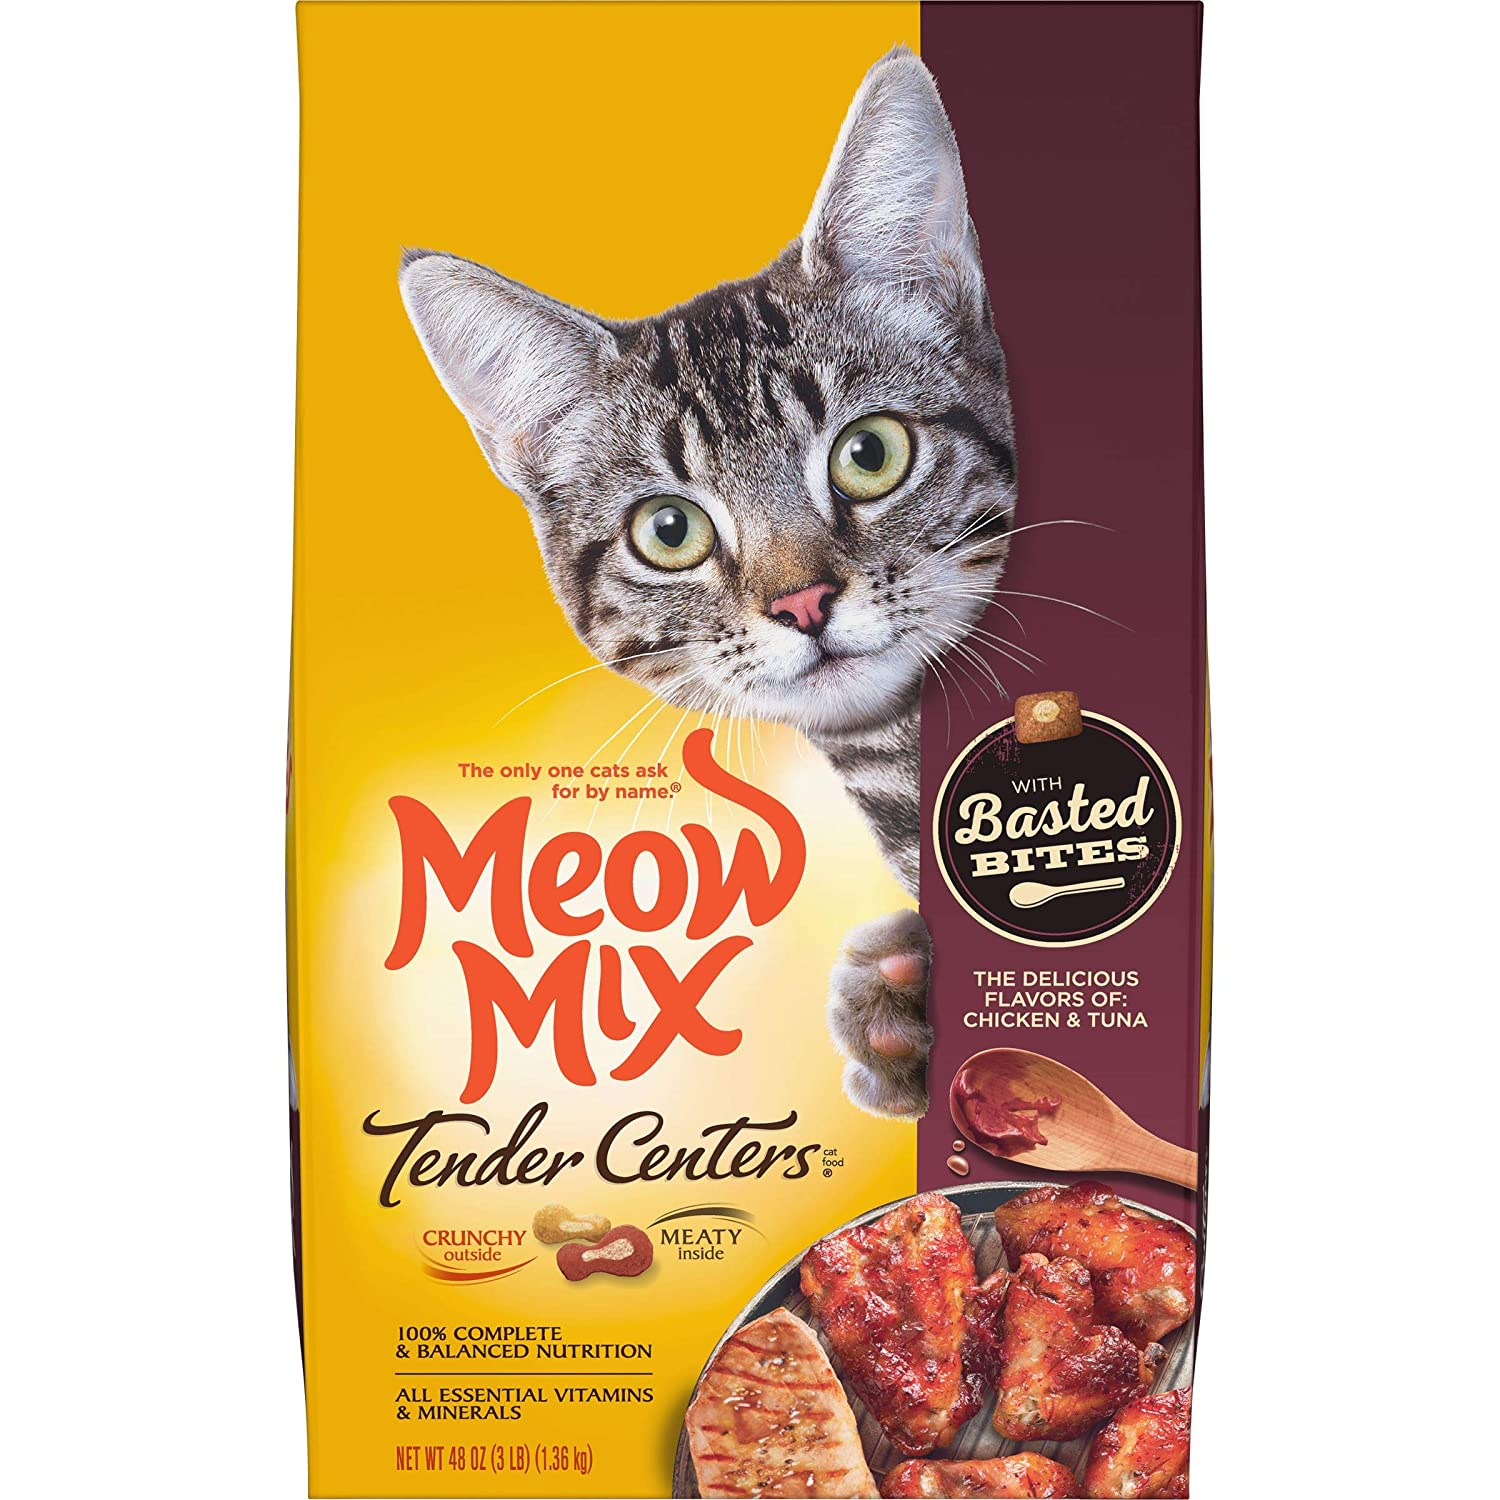 Meow Mix Tender Centers Basted Bites Dry Cat Food, Chicken & Tuna Flavor, 3 Pounds